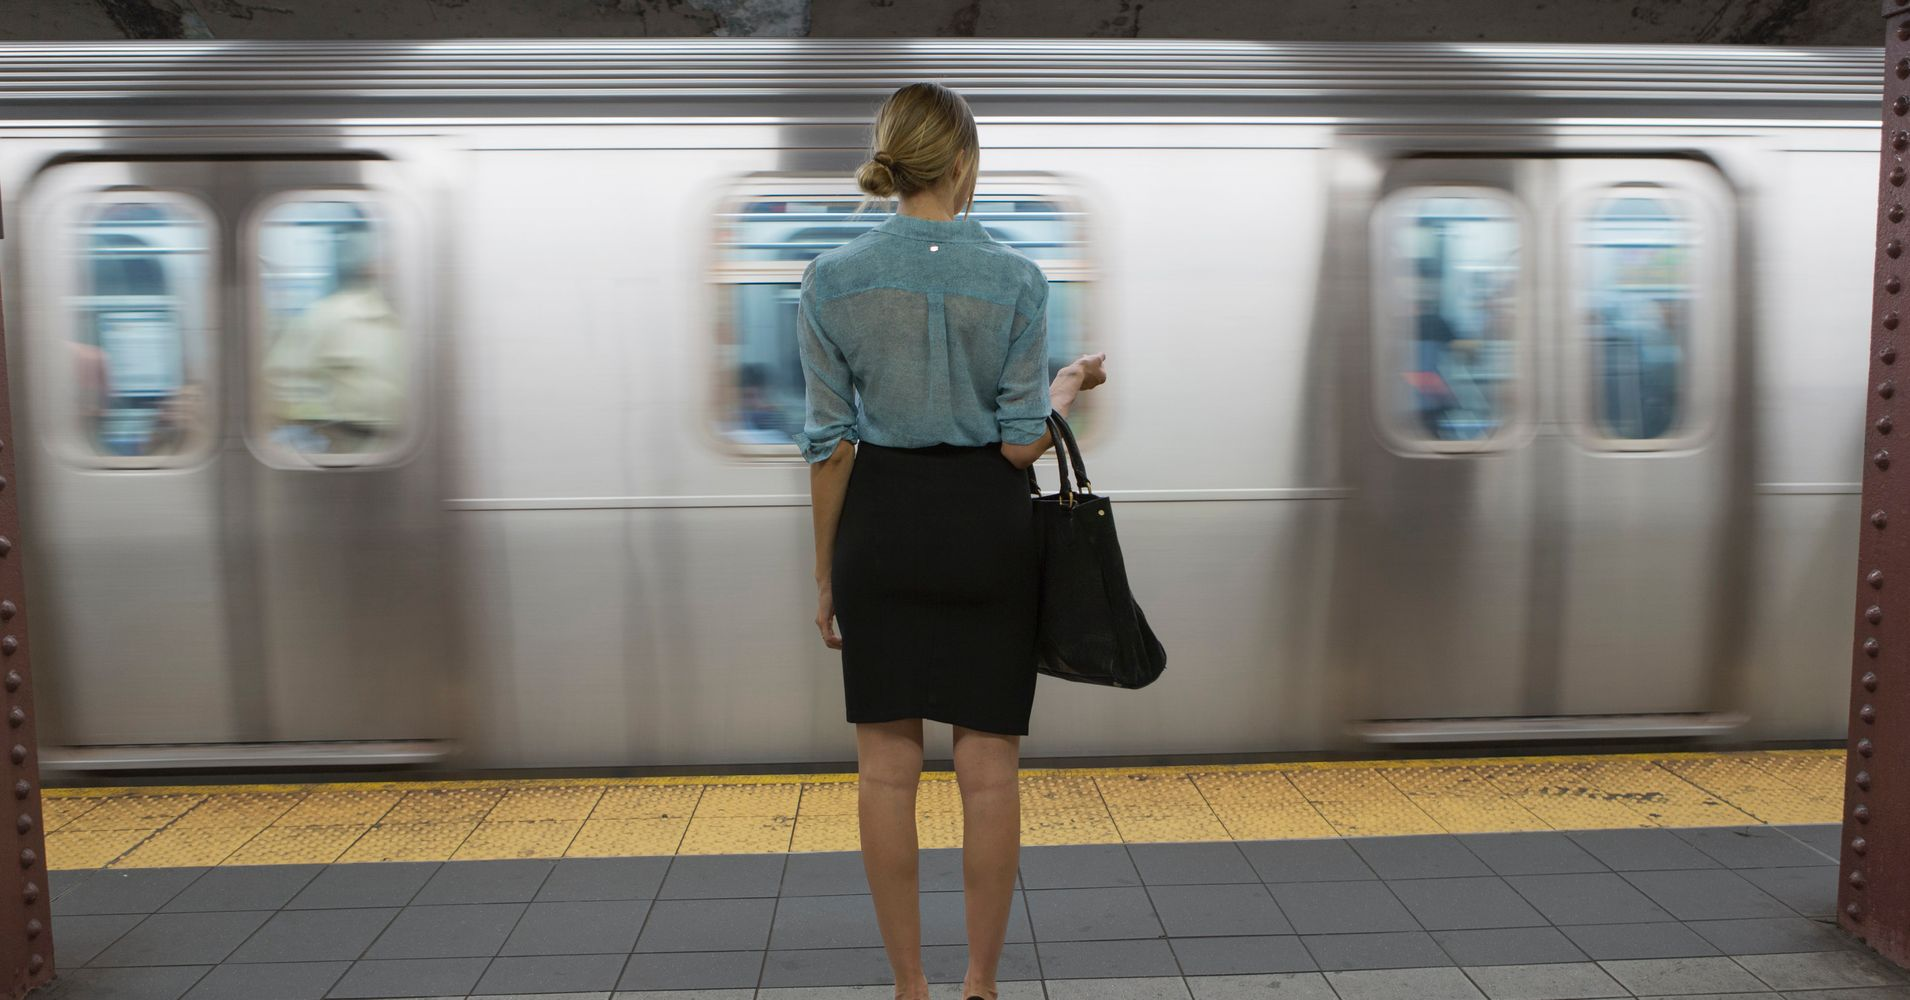 the disturbing, everyday encounters women face on public